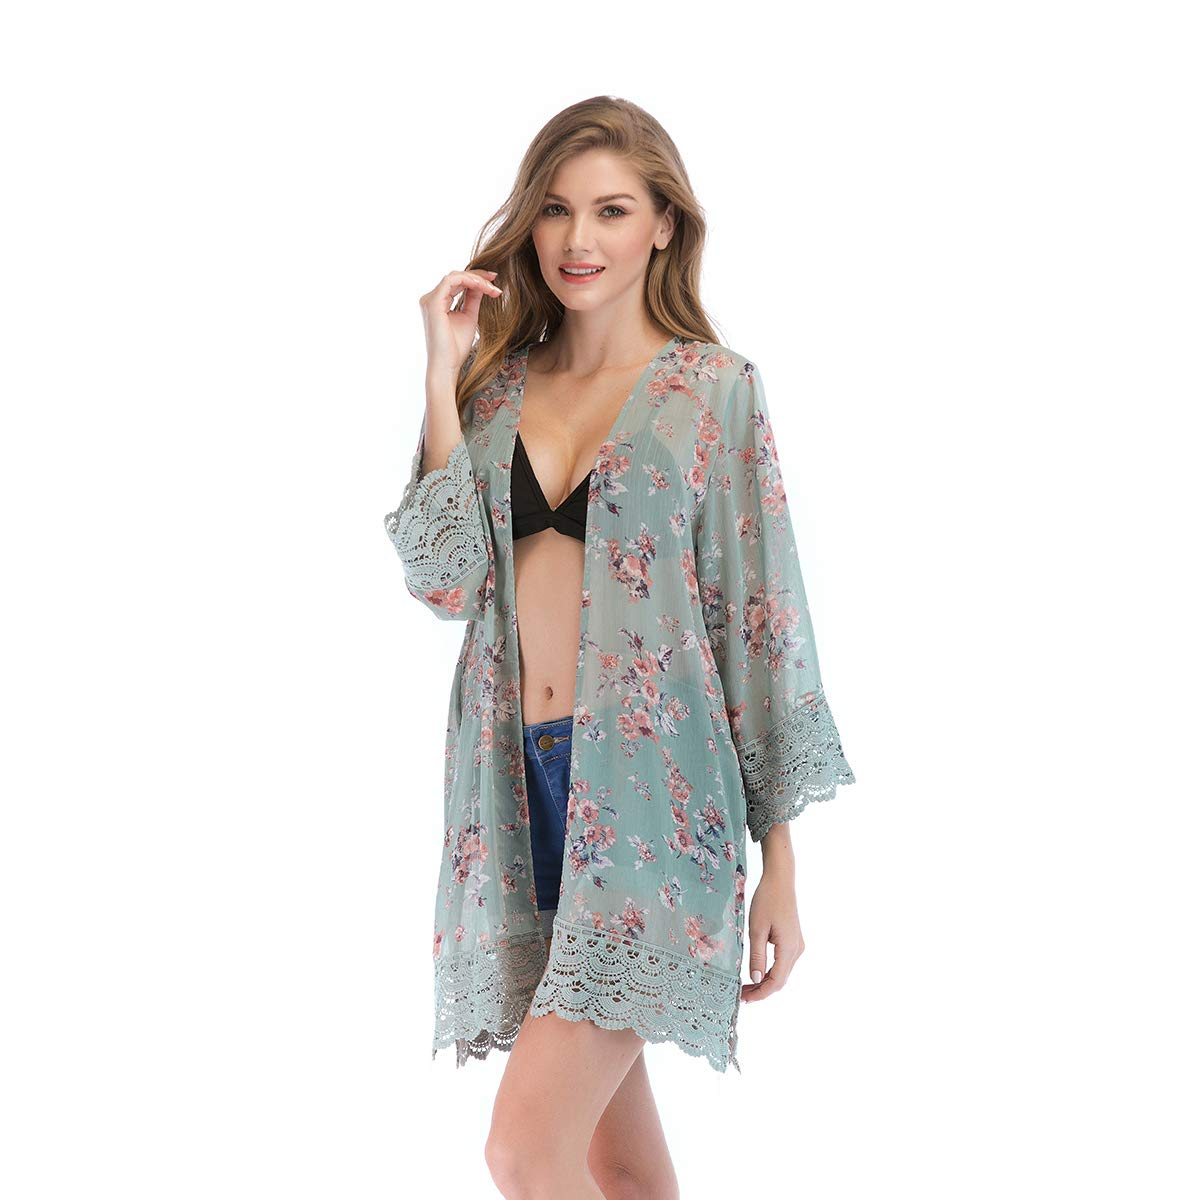 076233c3f98 FEATURES - Boho Floral Print   Lace Patchwork   Open Front Drape Cardigan    3 4 Sleeve   Split Side Design   Loose Kimono Cardigan WAYS TO WEAR -  Gorgeous ...